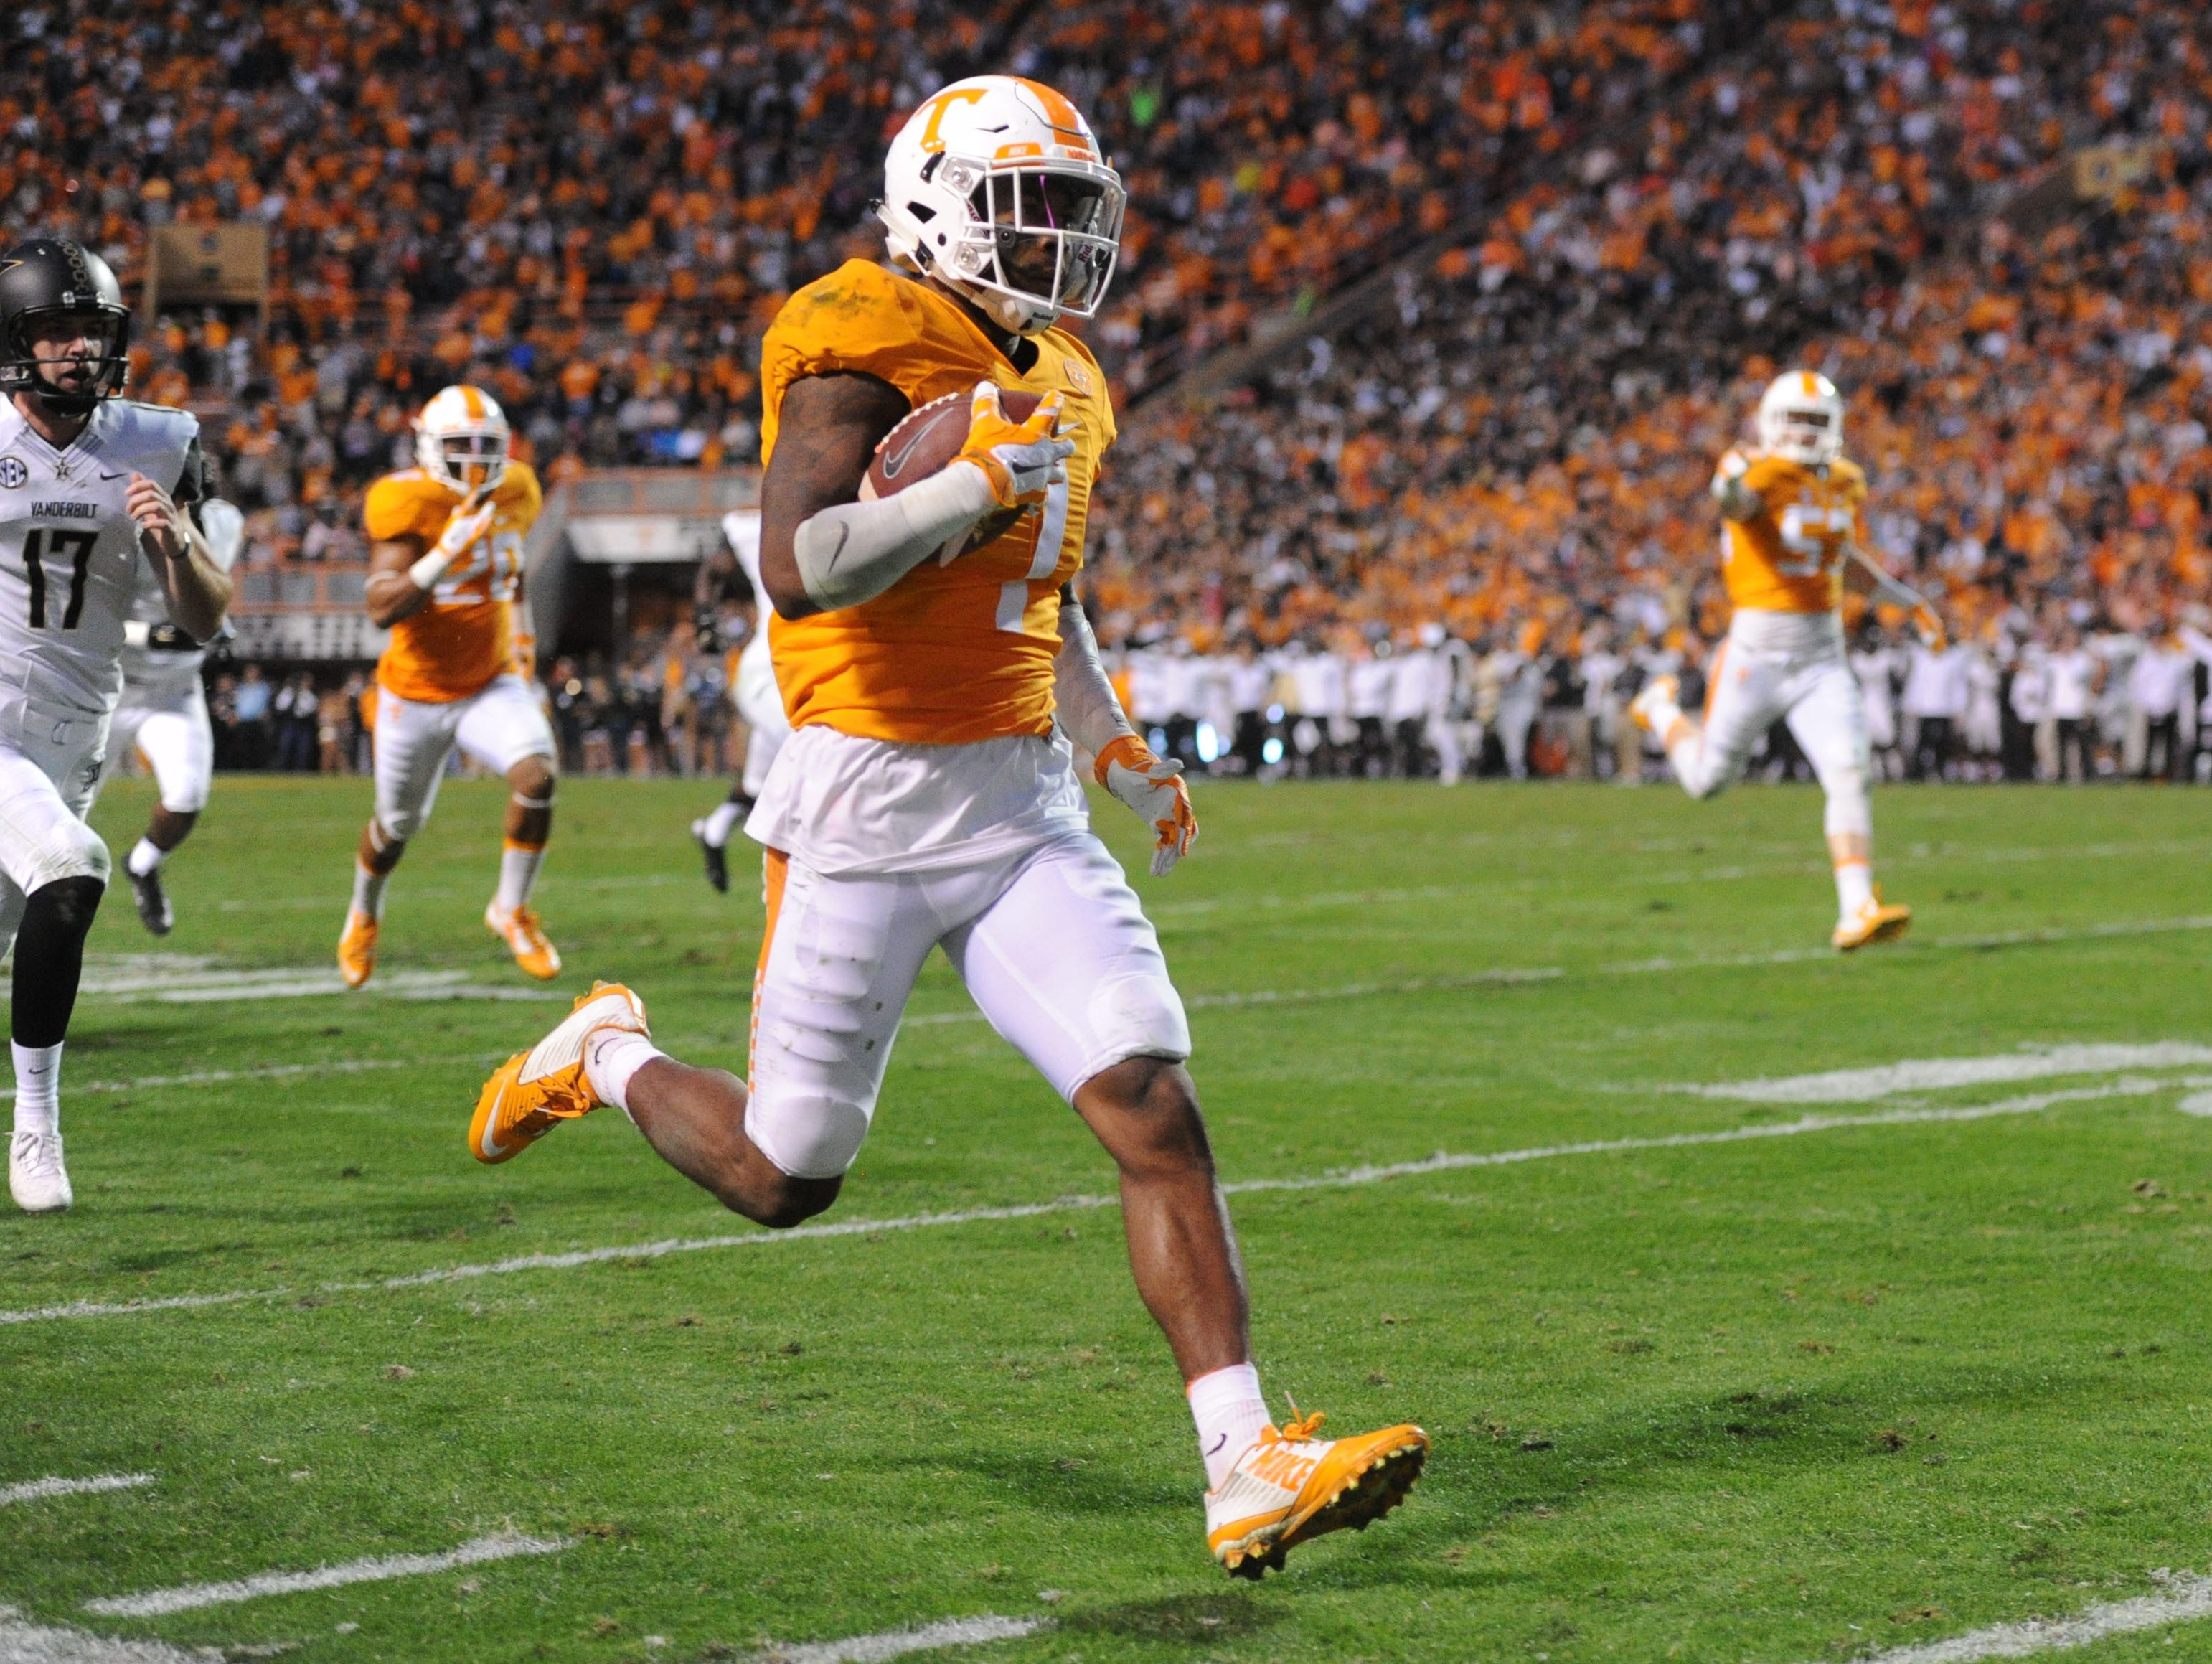 Tennessee defensive back Cameron Sutton (7) returns a punt for 85 yards against Vanderbilt during the first half at Neyland Stadium in Knoxville, Tenn. on Saturday, Nov. 28, 2015.